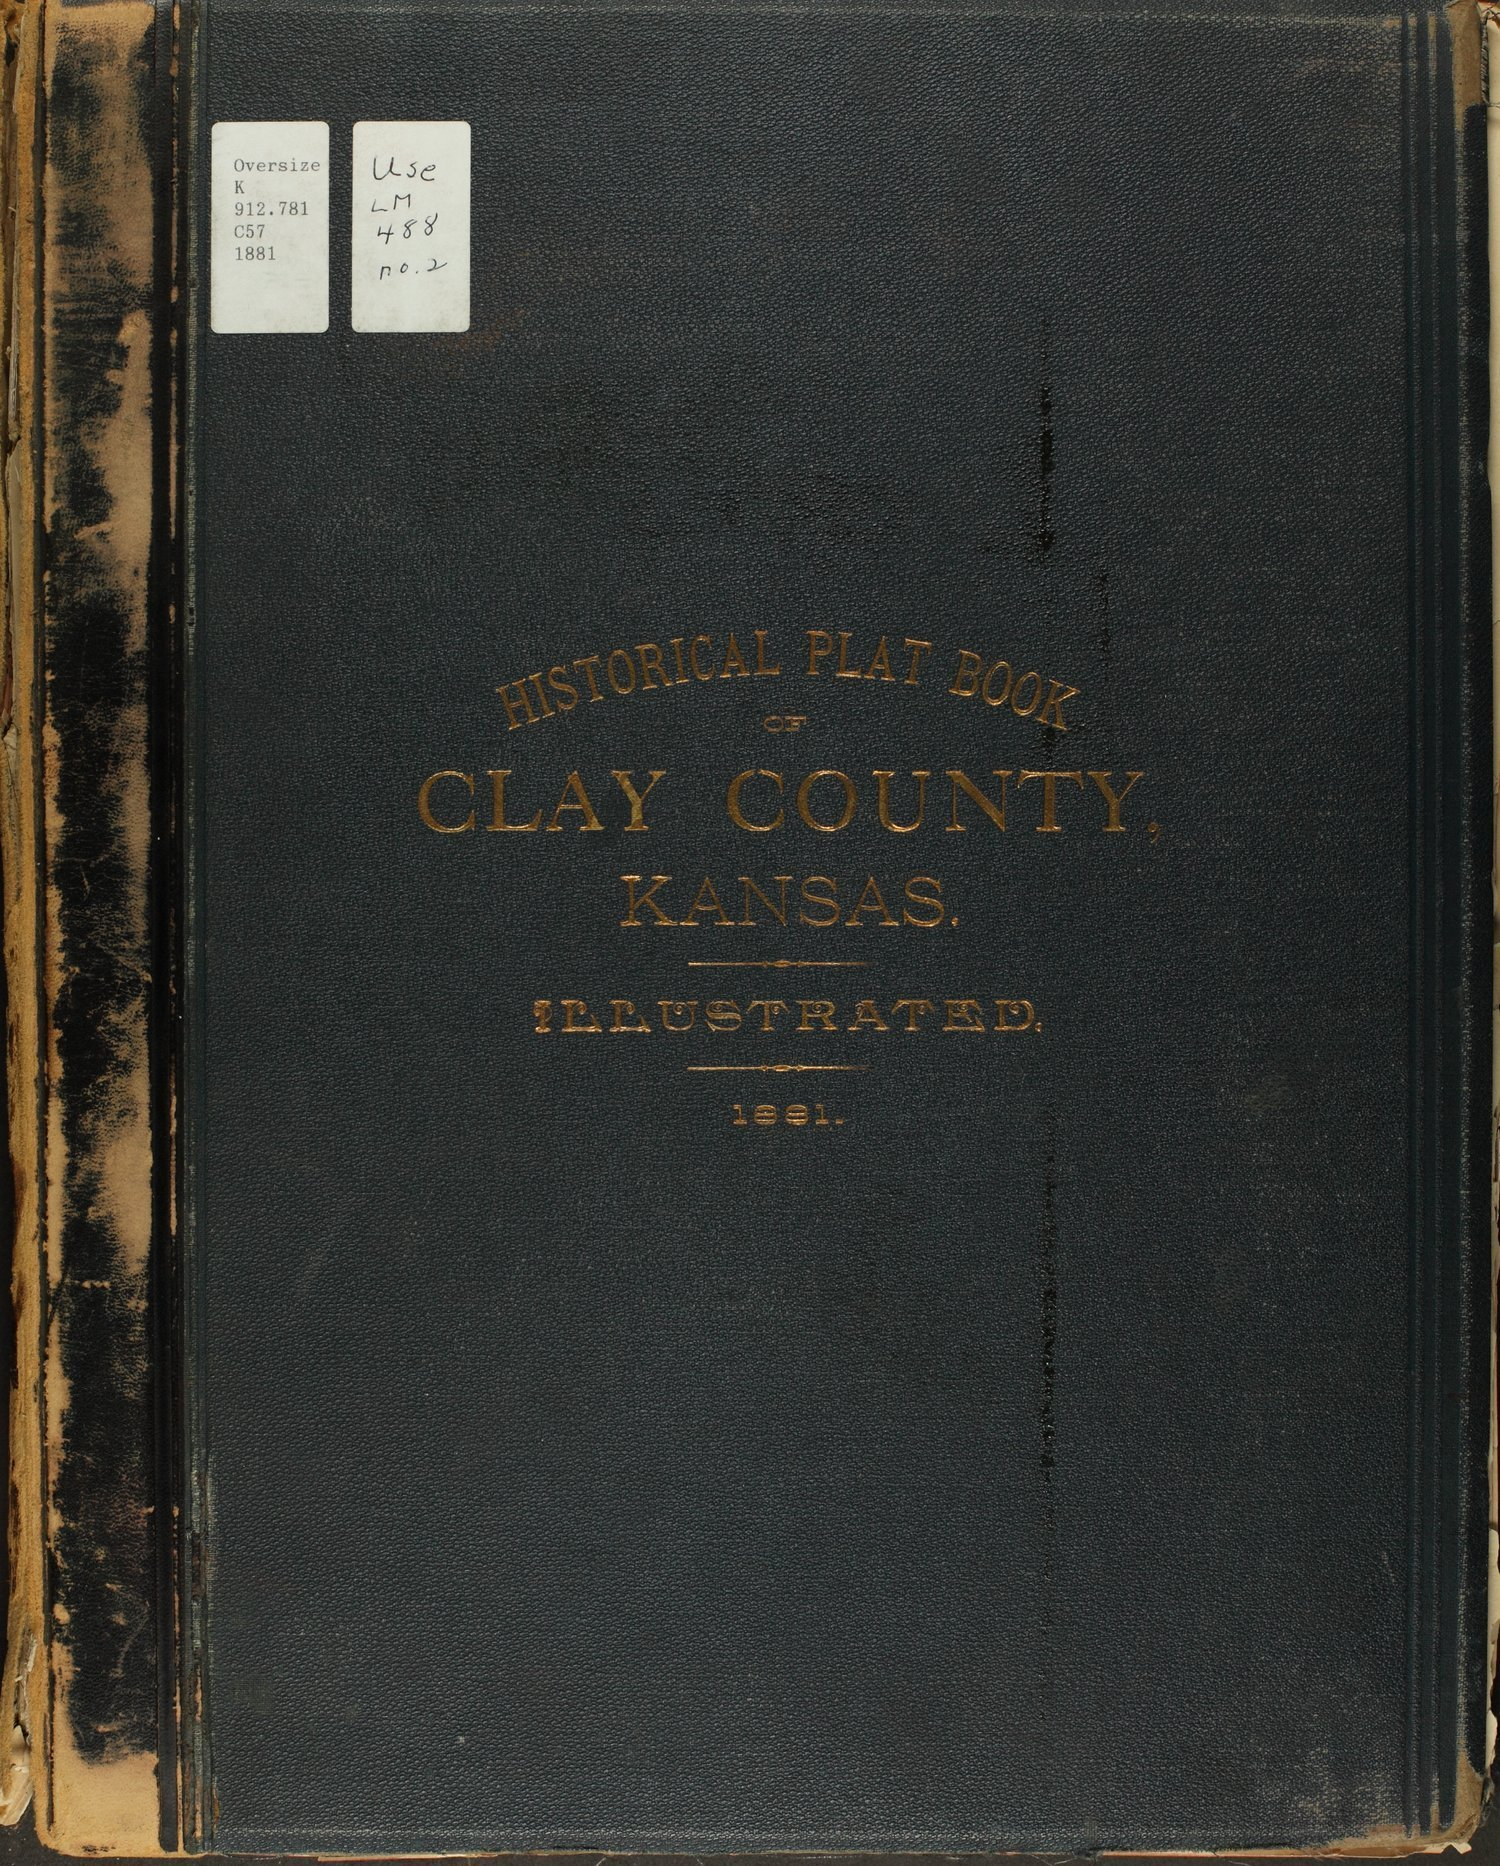 Historical plat book of Clay County, Kansas - Front Cover